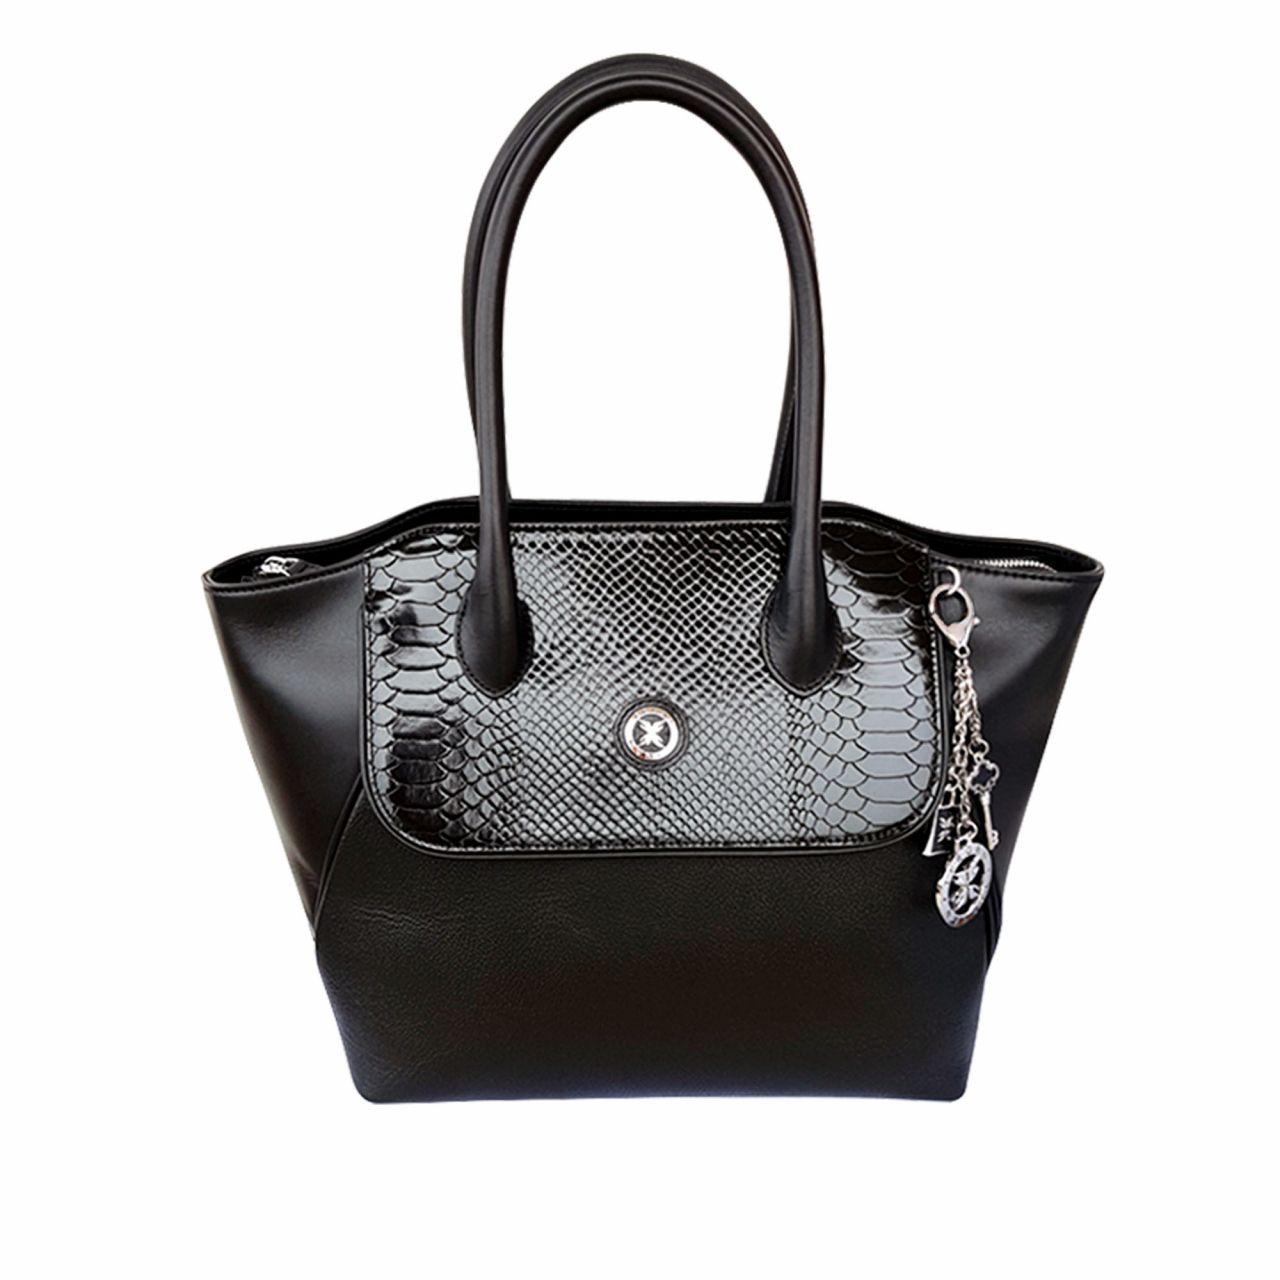 Business bag in printed calf leather